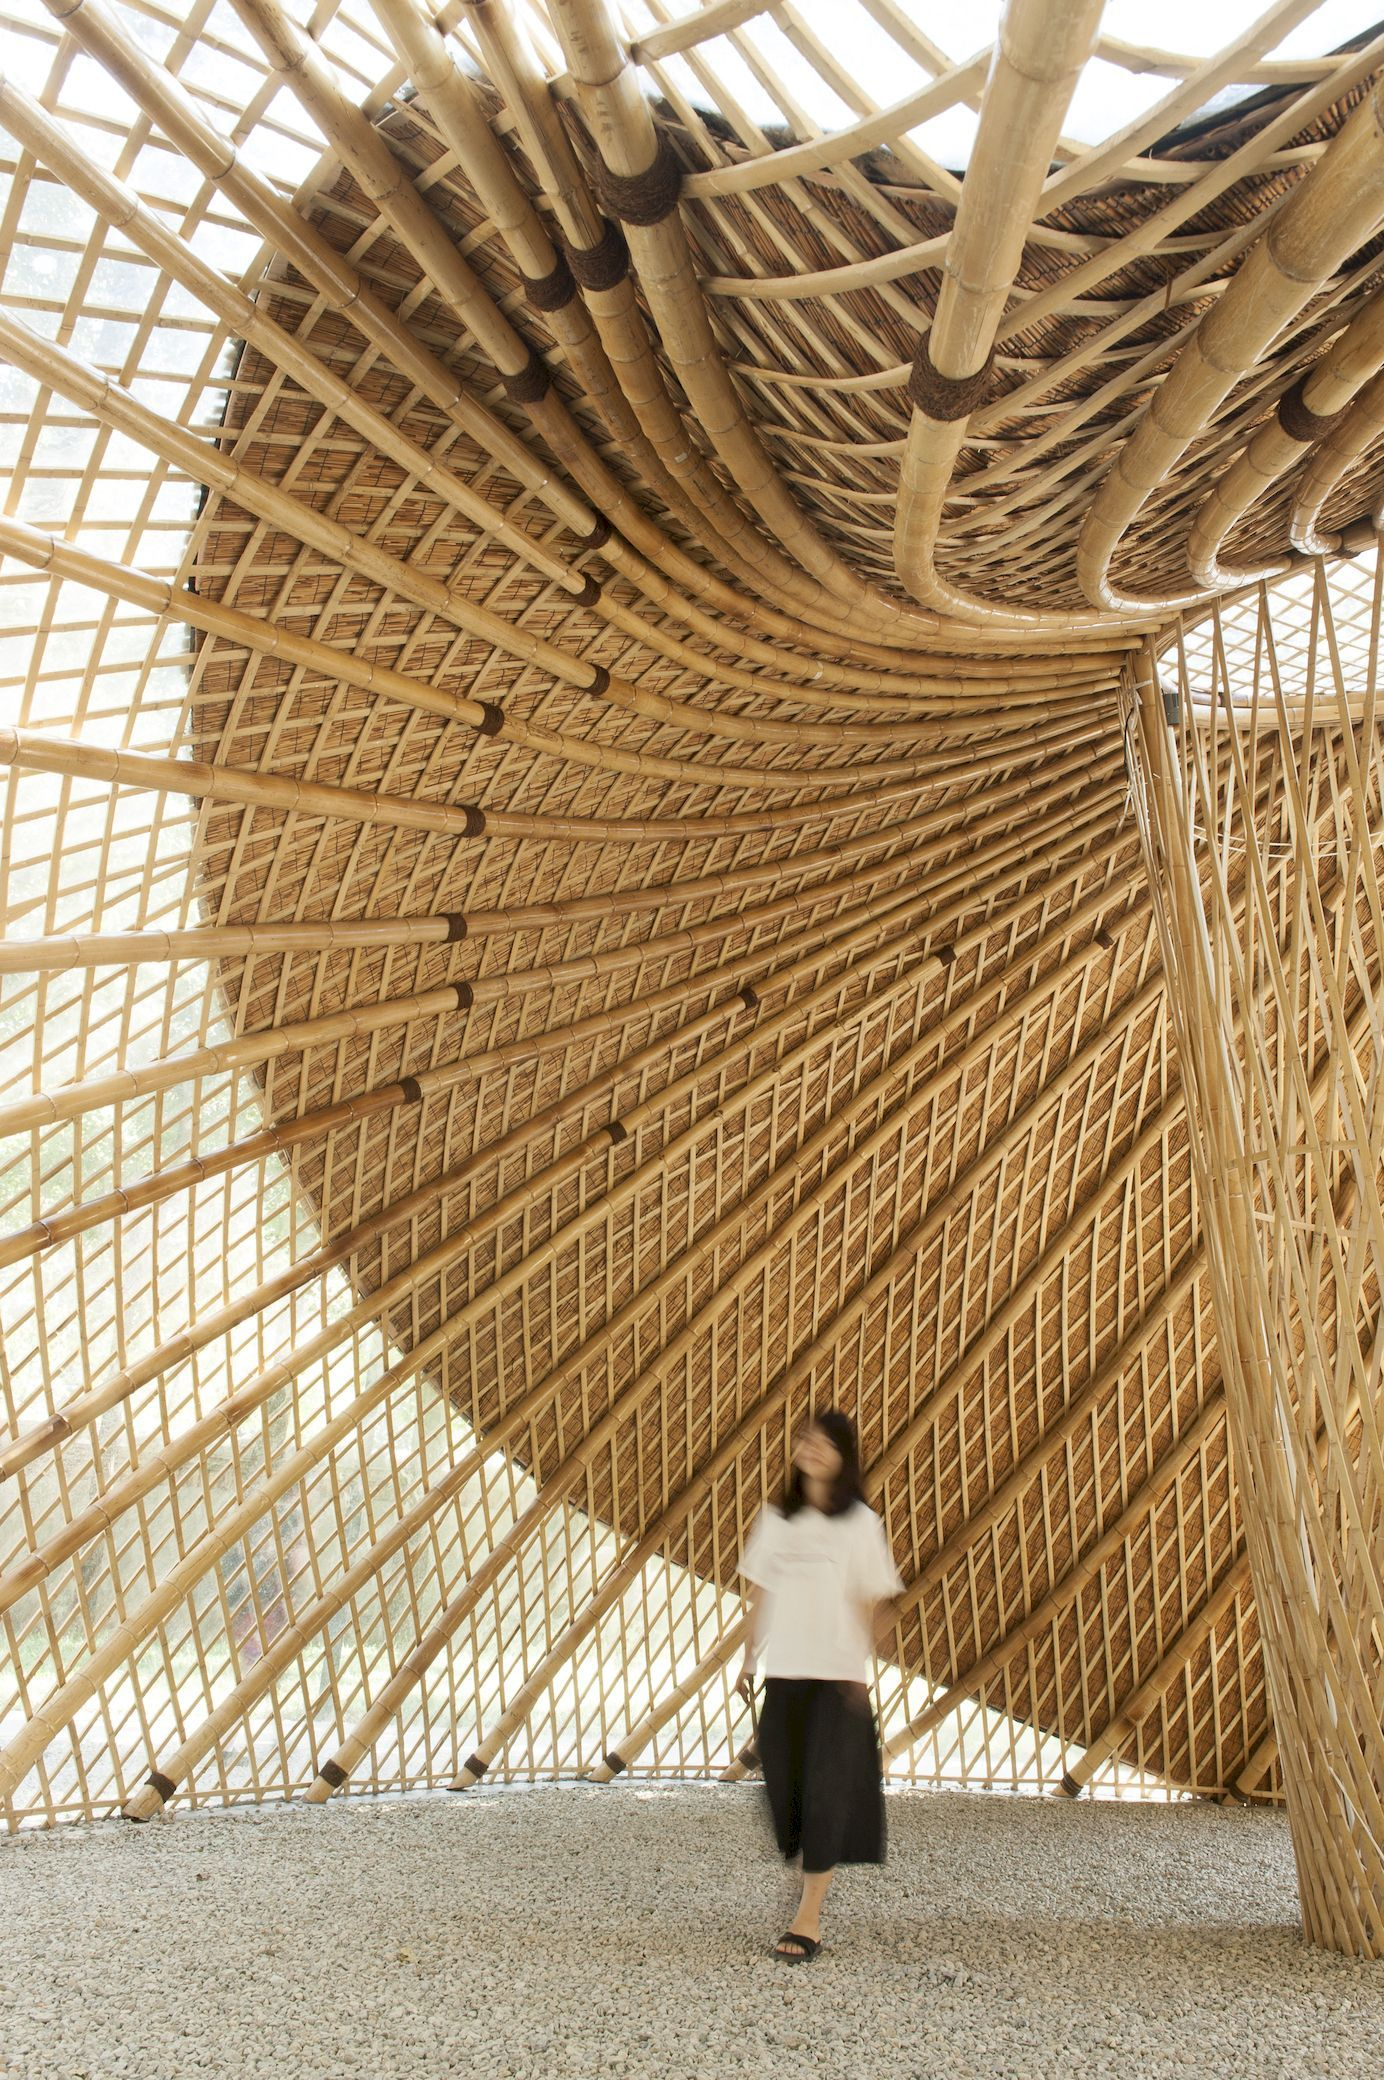 Swirling Cloud Bulletin Pavilion For Bjfu Garden Festival With